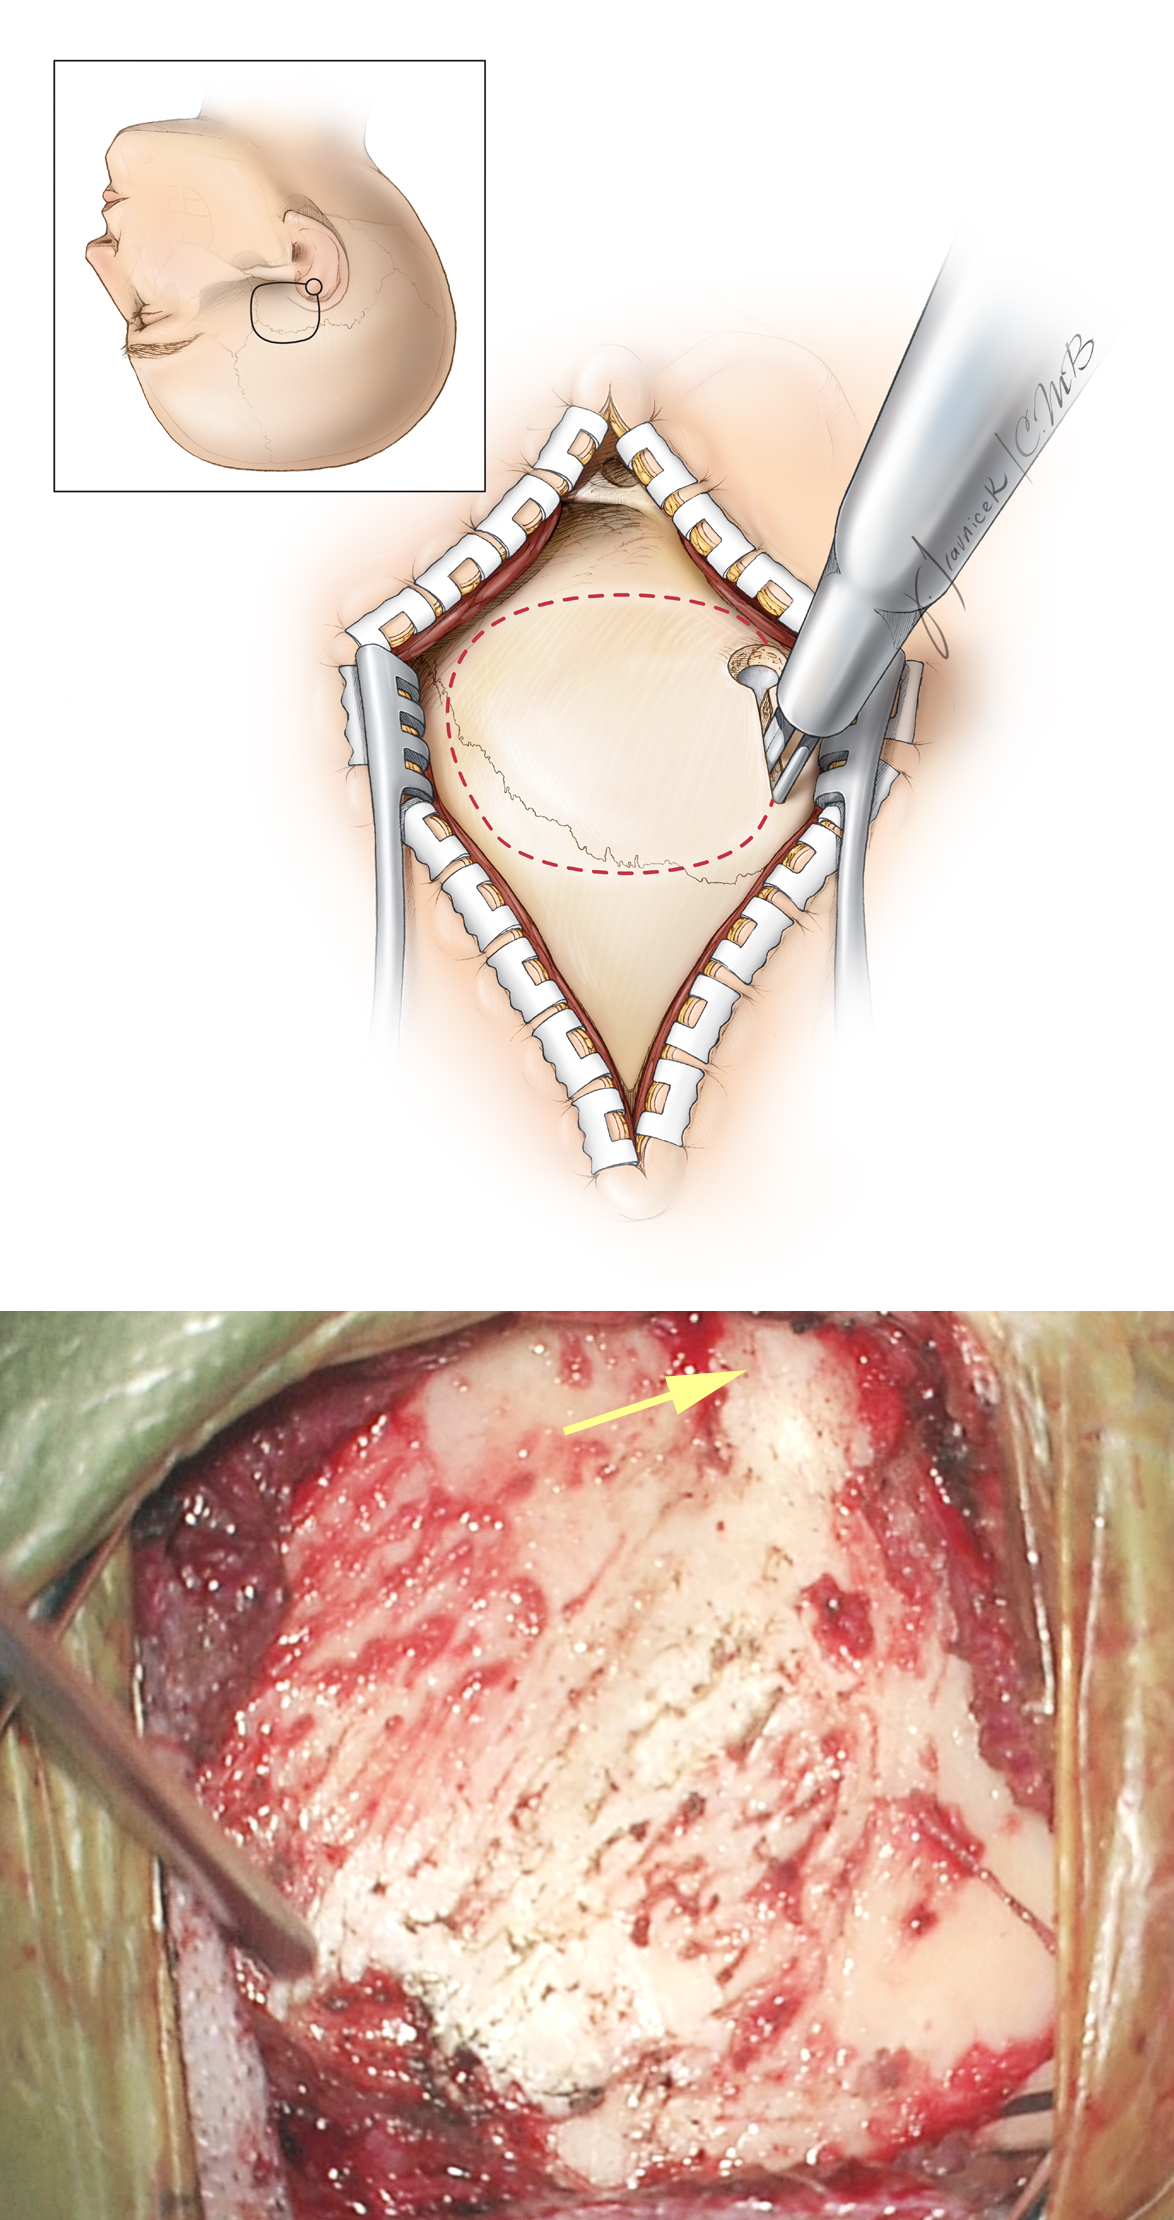 Figure 8: Craniotomy through a linear incision is illustrated. In this case, the fibers of the temporalis muscle are split longitudinally and the muscle attachments along the superior temporal line disconnected. When compared with the horseshoe incision, the posterior extent of exposure may be slightly compromised.  Regardless which incision is used, the width of the craniotomy is two-thirds anterior and one-third posterior to the IAC. The root of the zygoma is exposed (arrow).